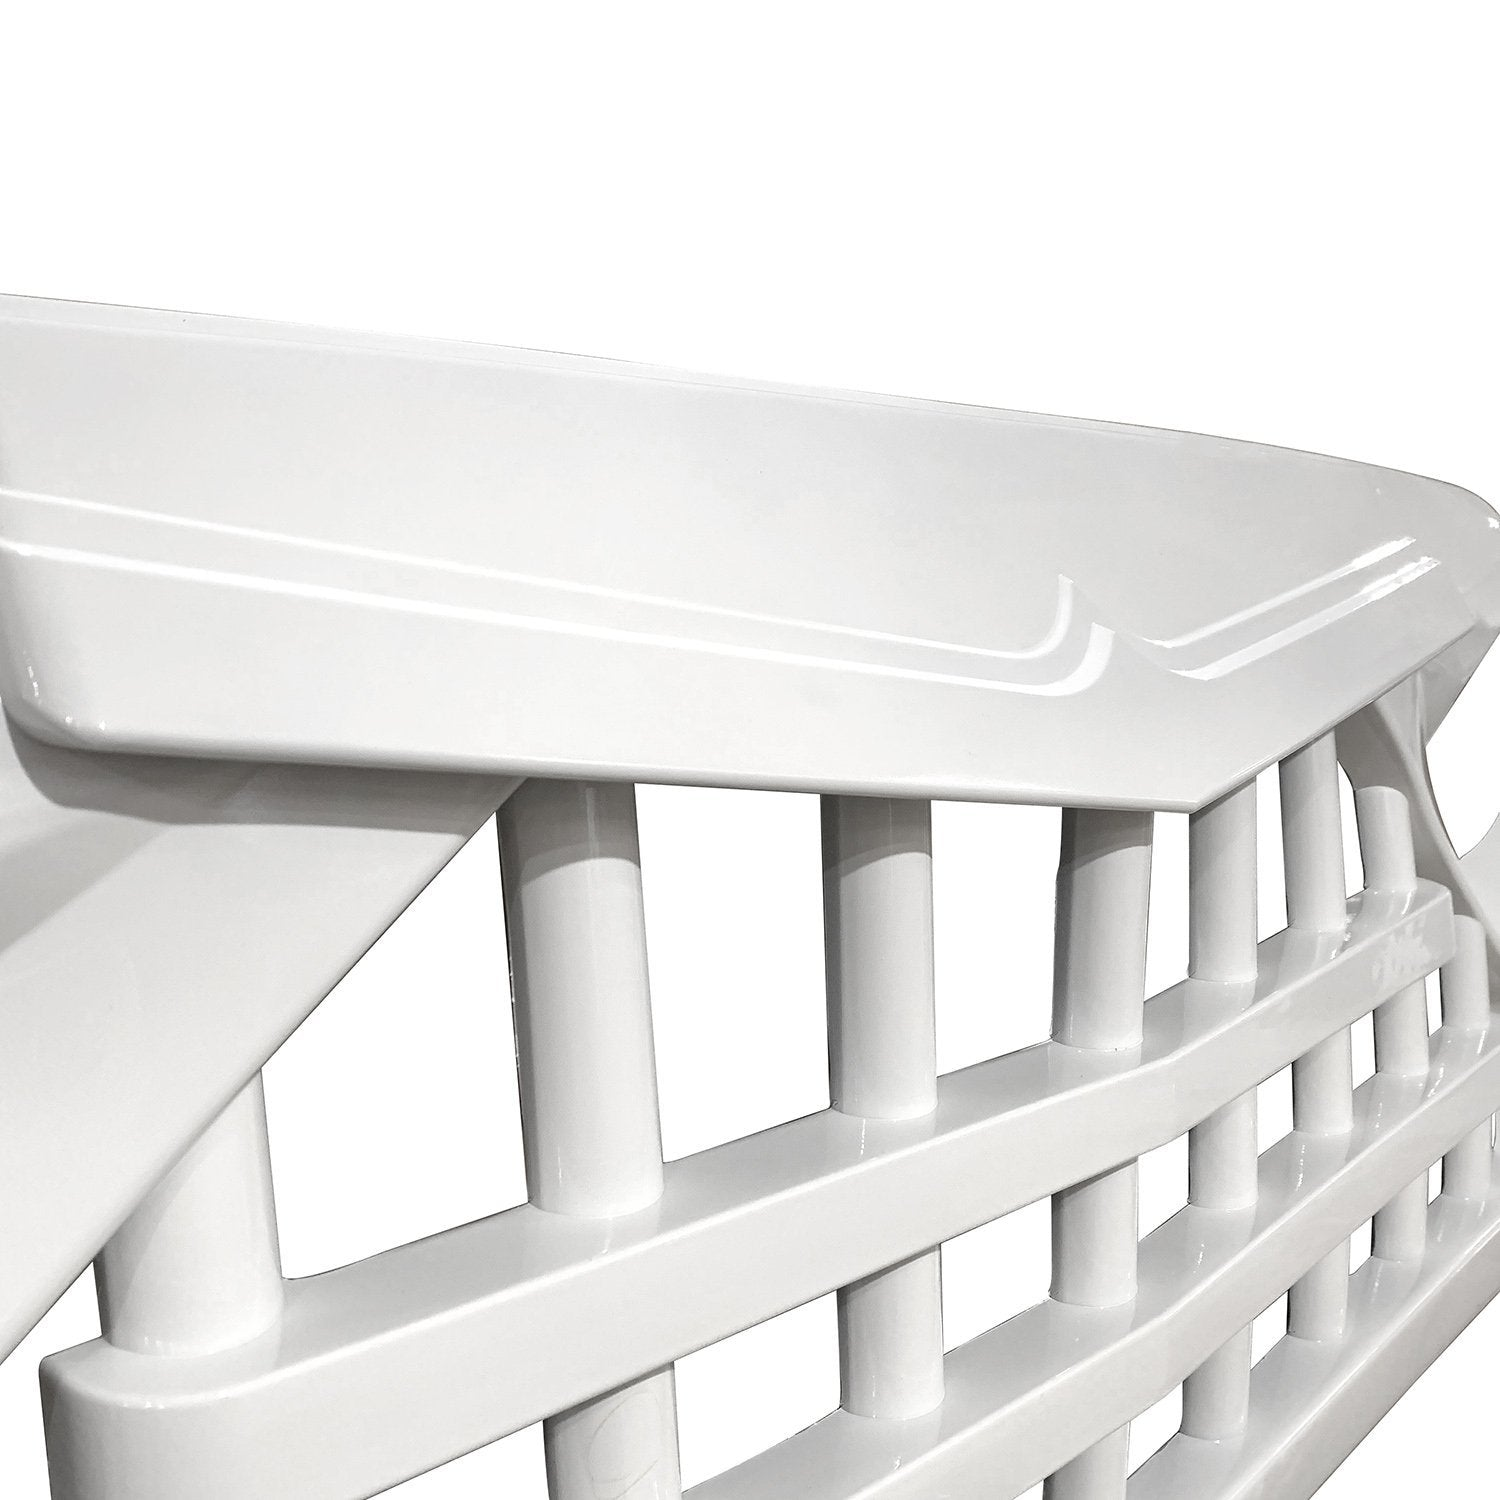 wildrock4x4 Grille Parts Glossy White Knight Grill For Jeep Wrangler JK 07-18